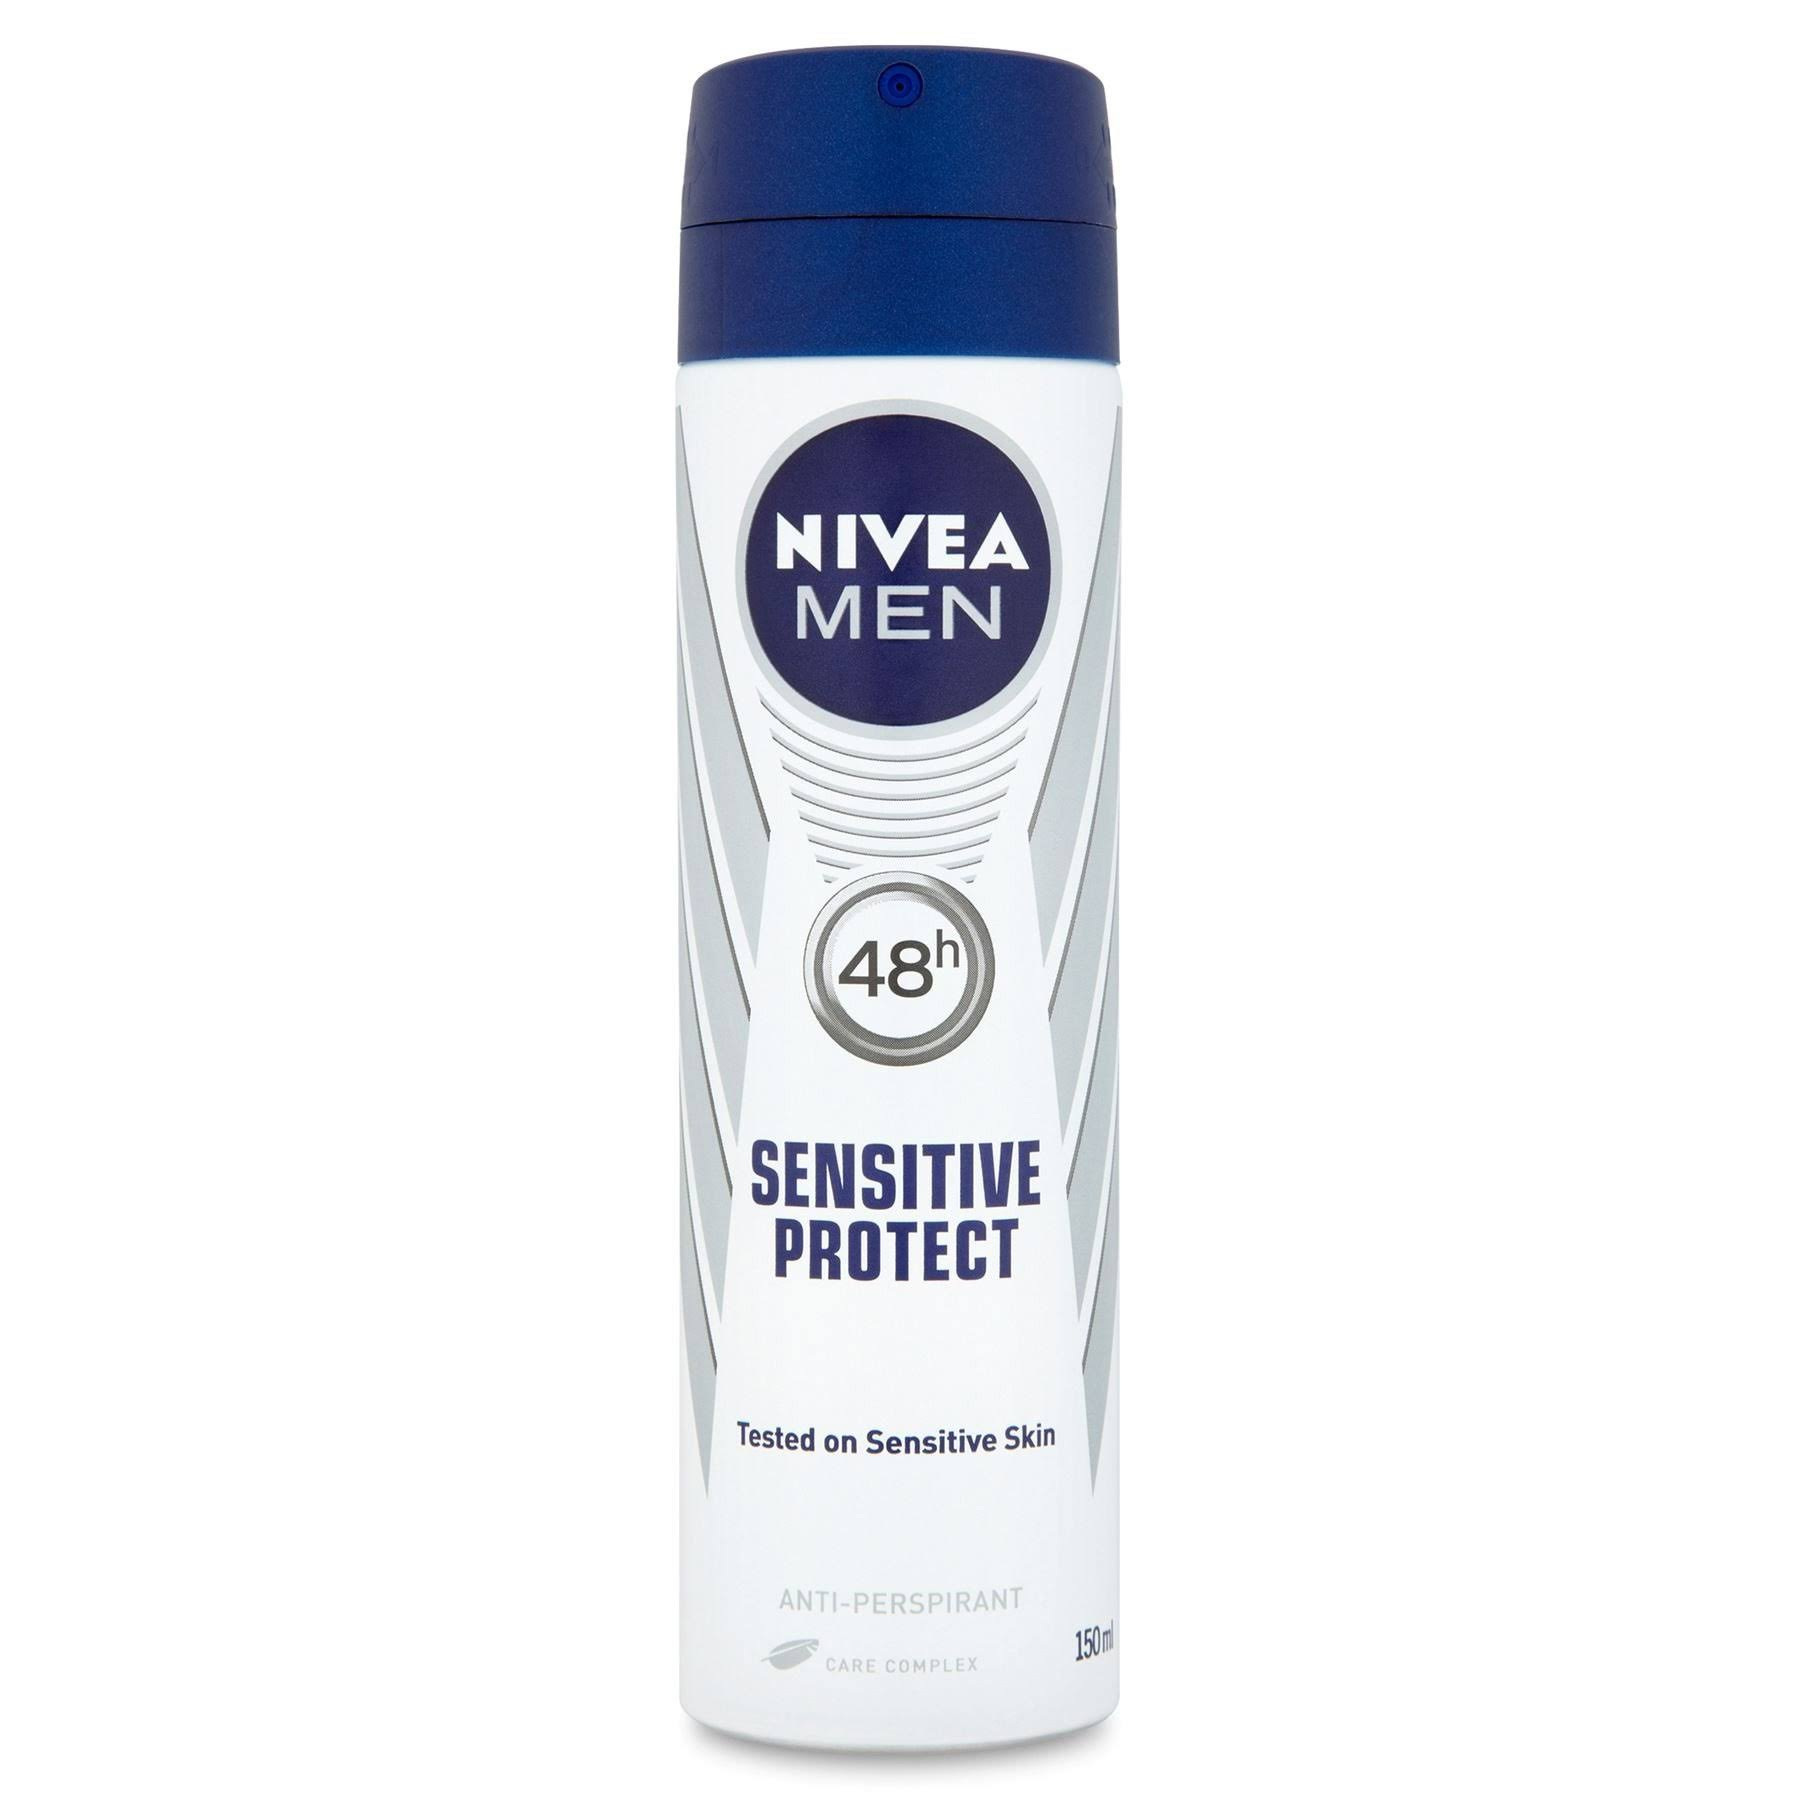 Nivea Men's Sensitive Protect Spray - 150ml